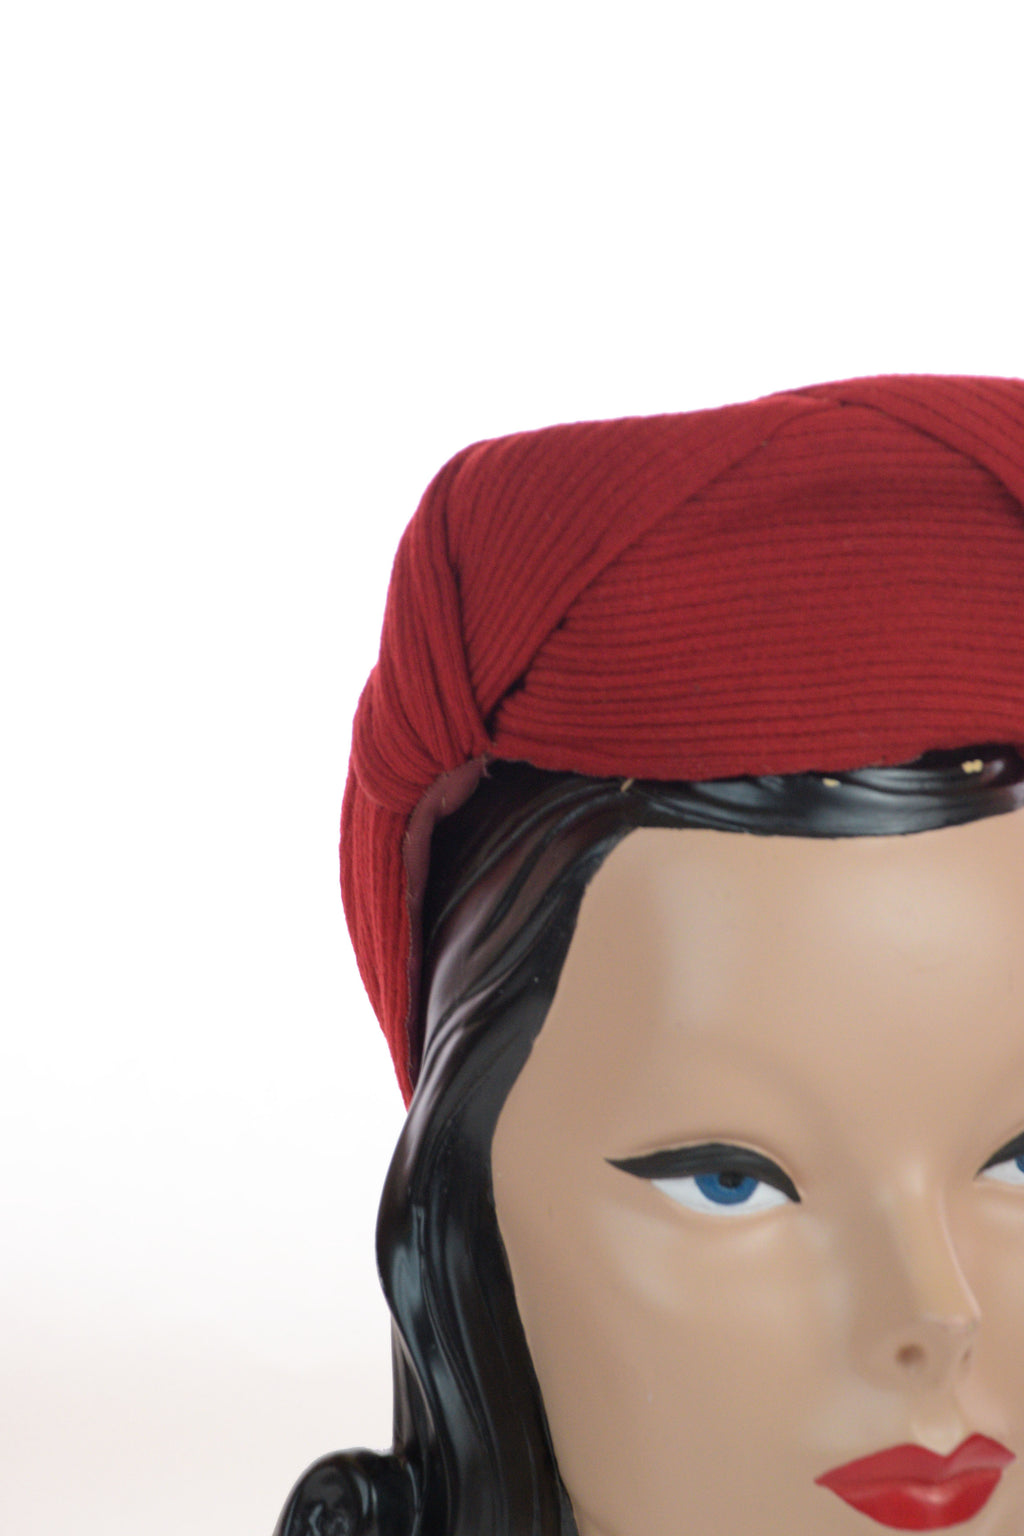 Fantastic 1940s Pleated Red Wool Structural Turban with Black Buckle Accent